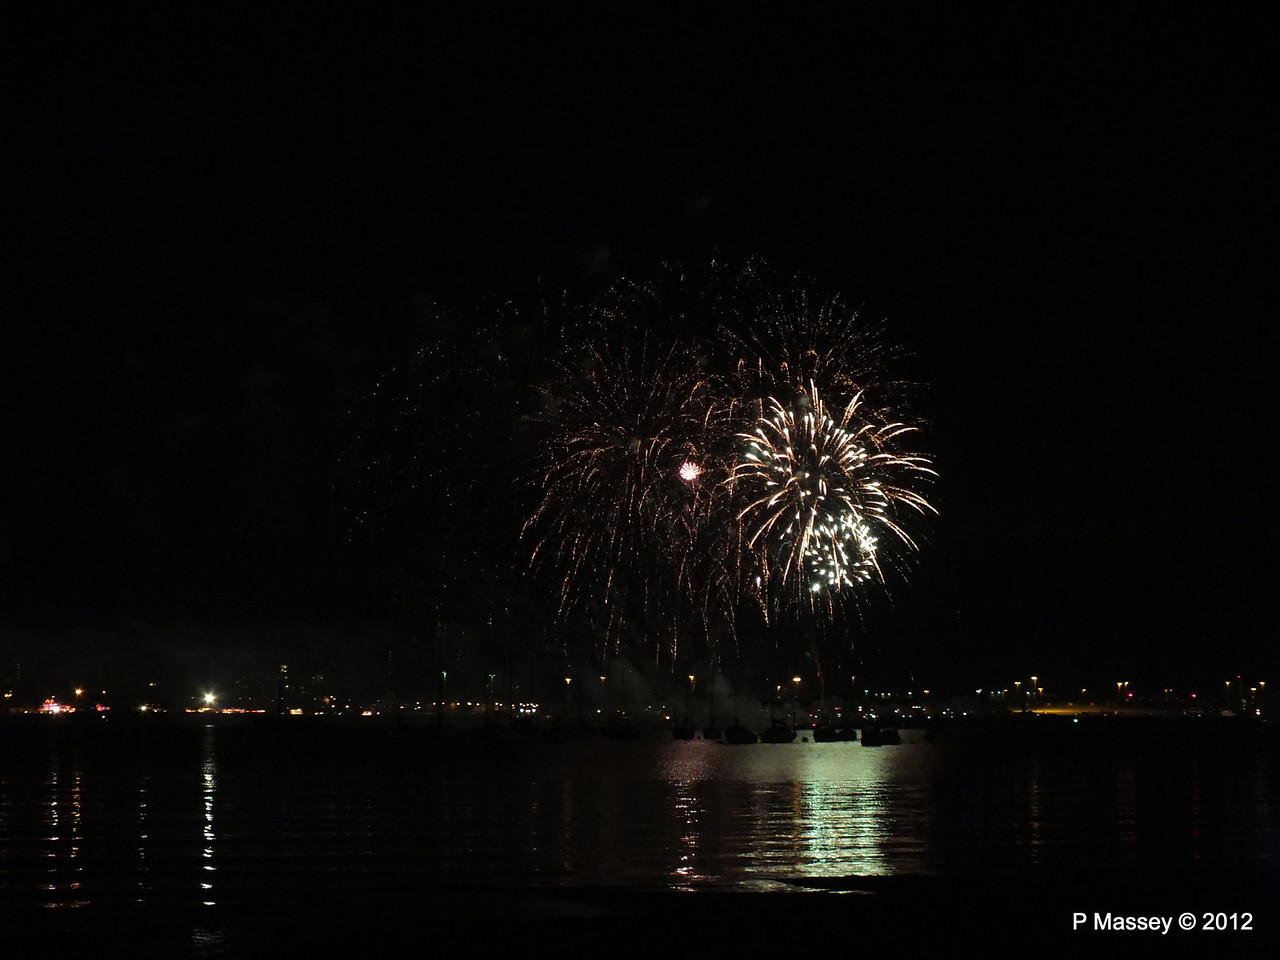 Fireworks off Mayflower Park PDM 03-11-2012 20-55-34